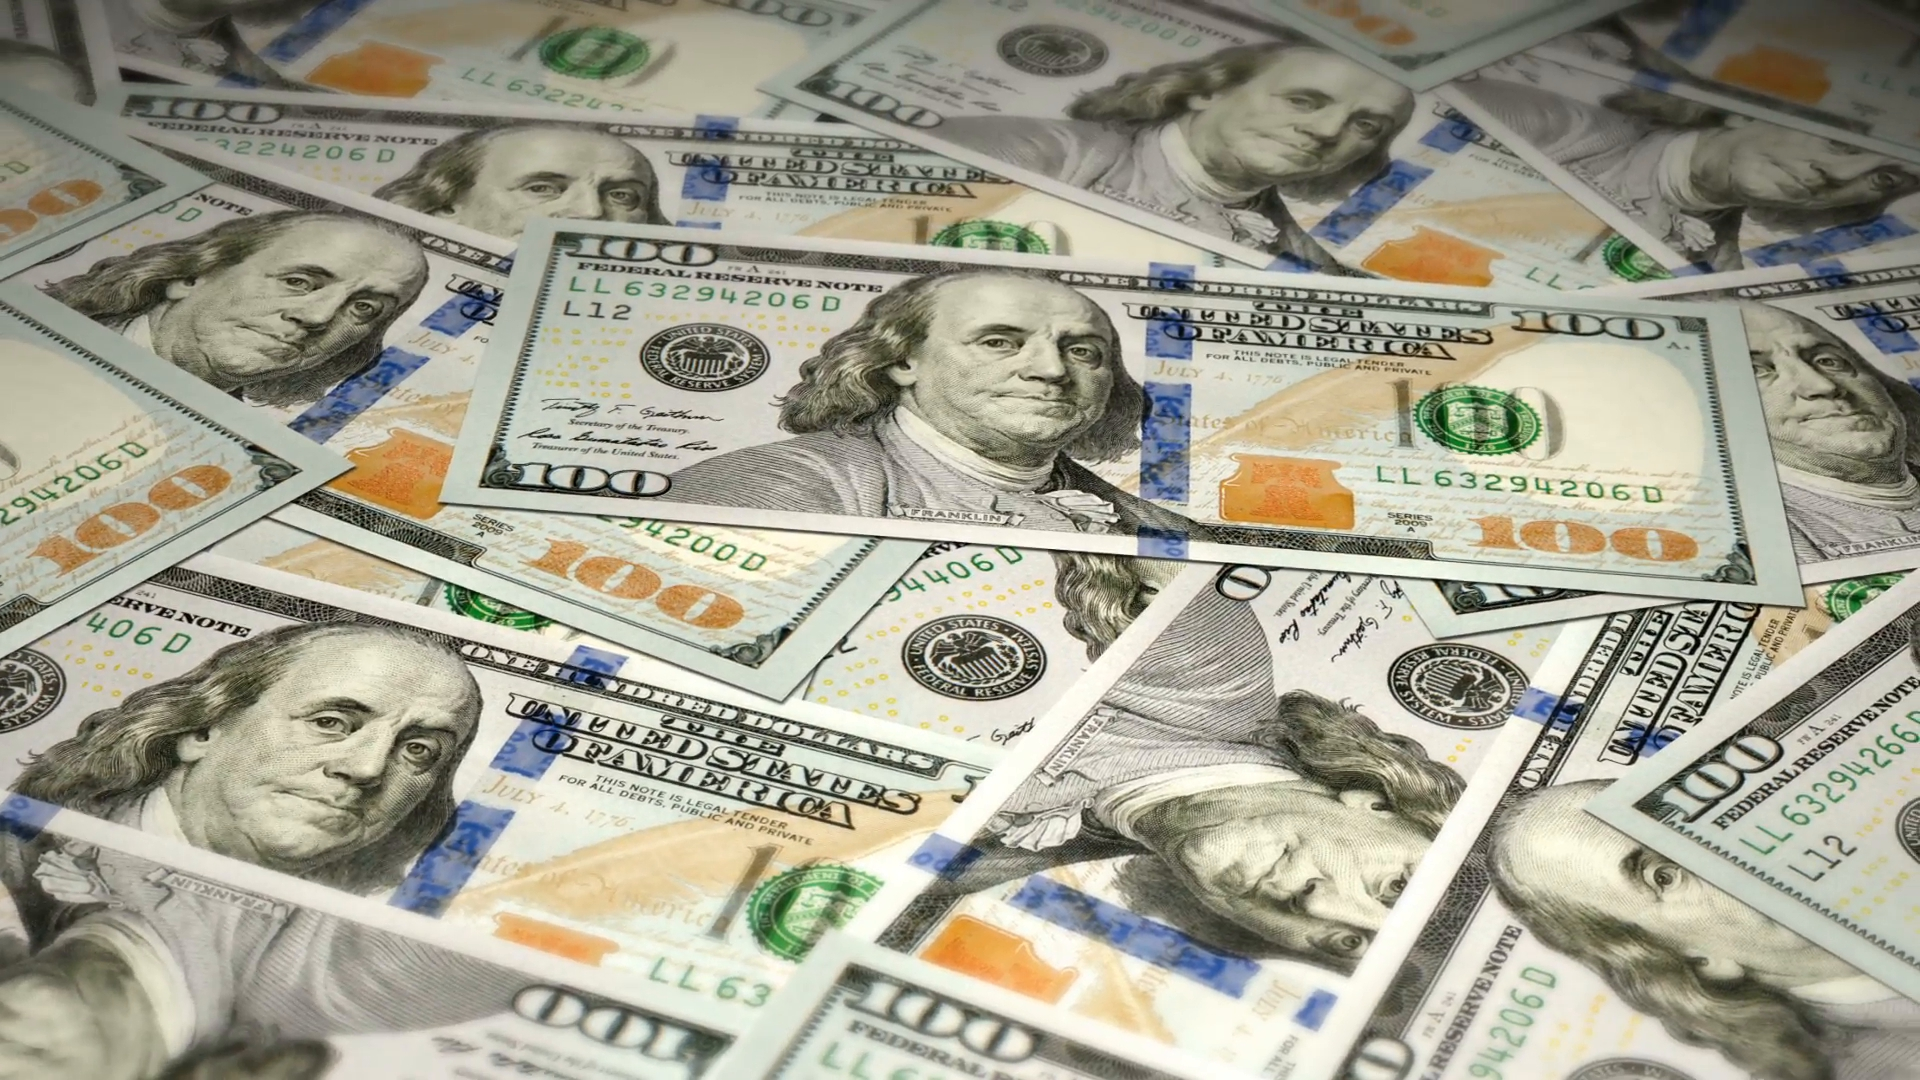 10 Best Picture Of 100 Dollar Bills FULL HD 1920×1080 For PC Background